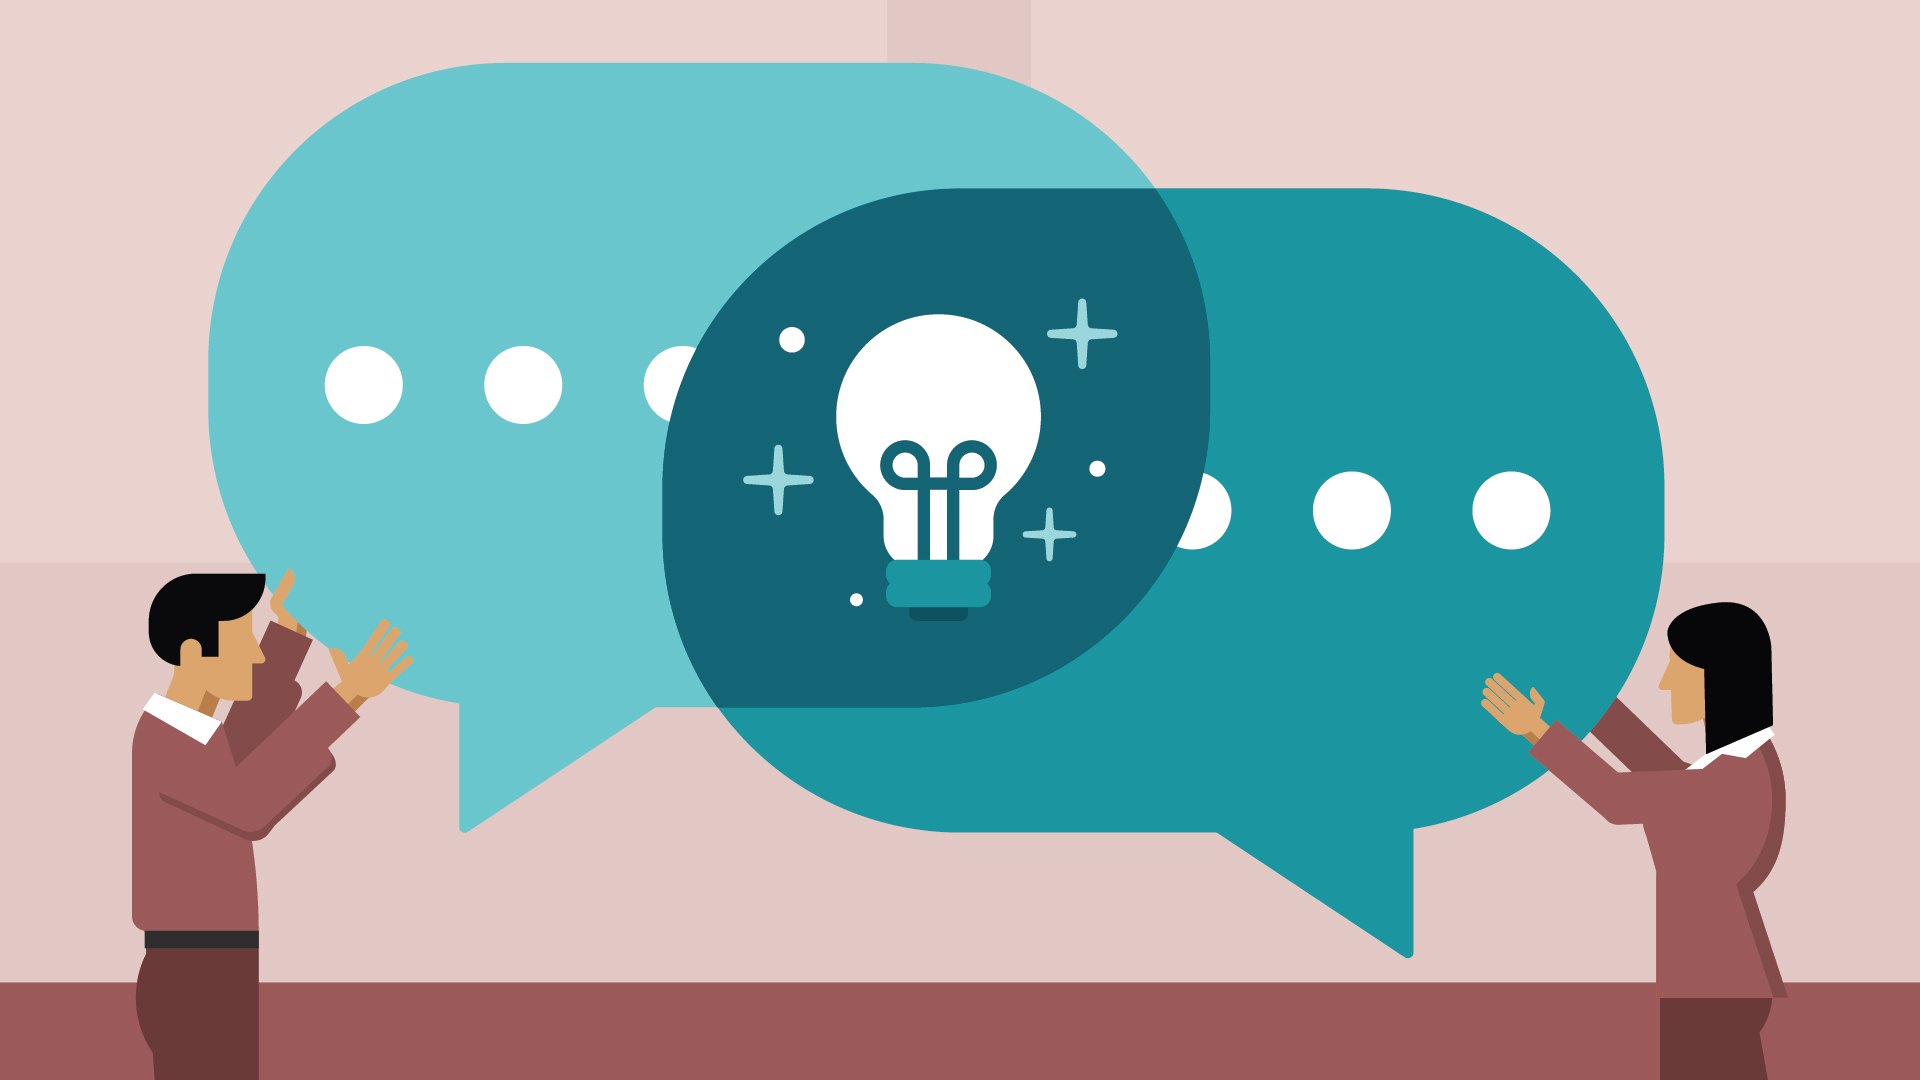 Identify Different Reasons Why People Communicate